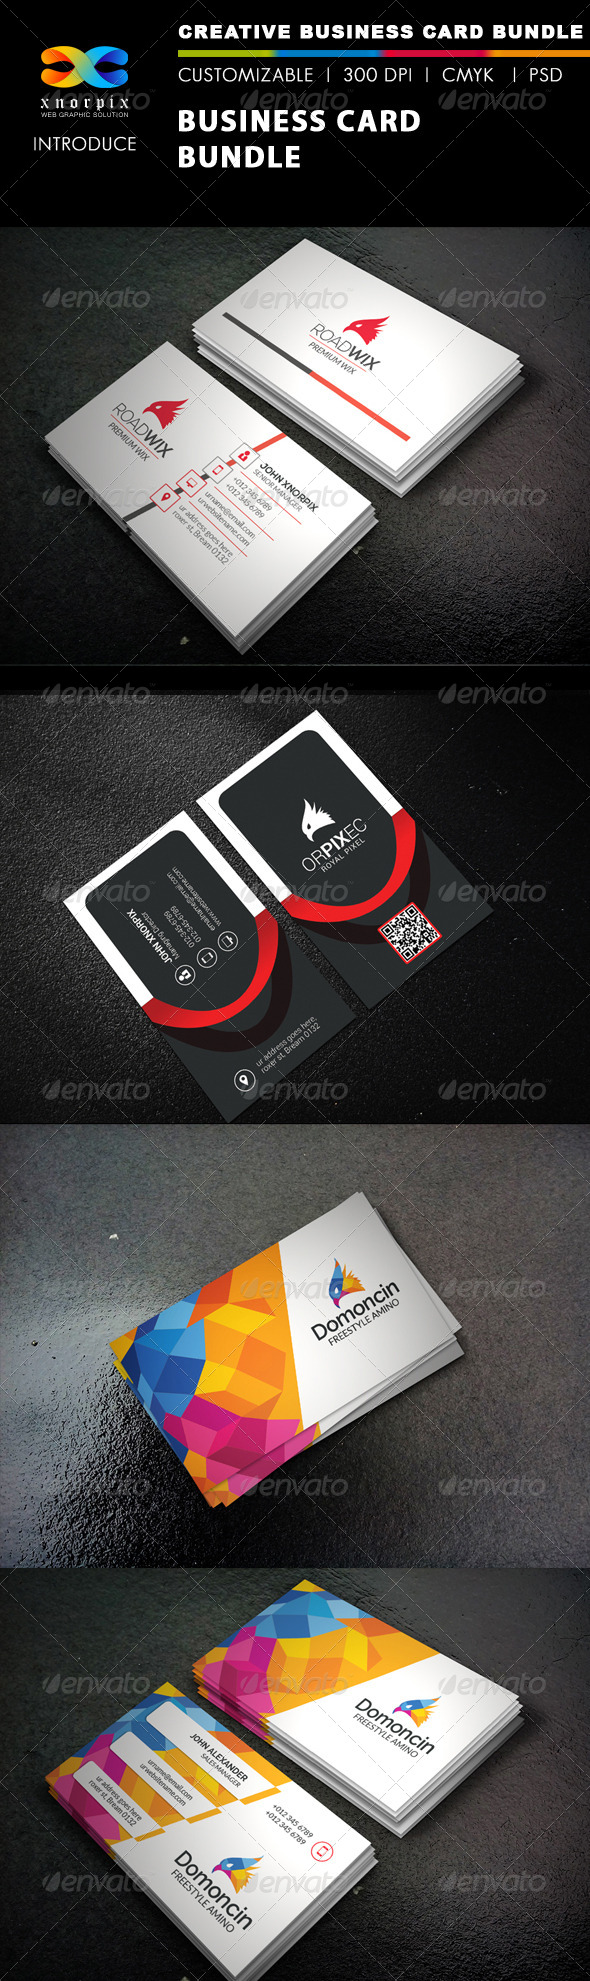 GraphicRiver Business Card Bundle 3 in 1-Vol 40 8469320